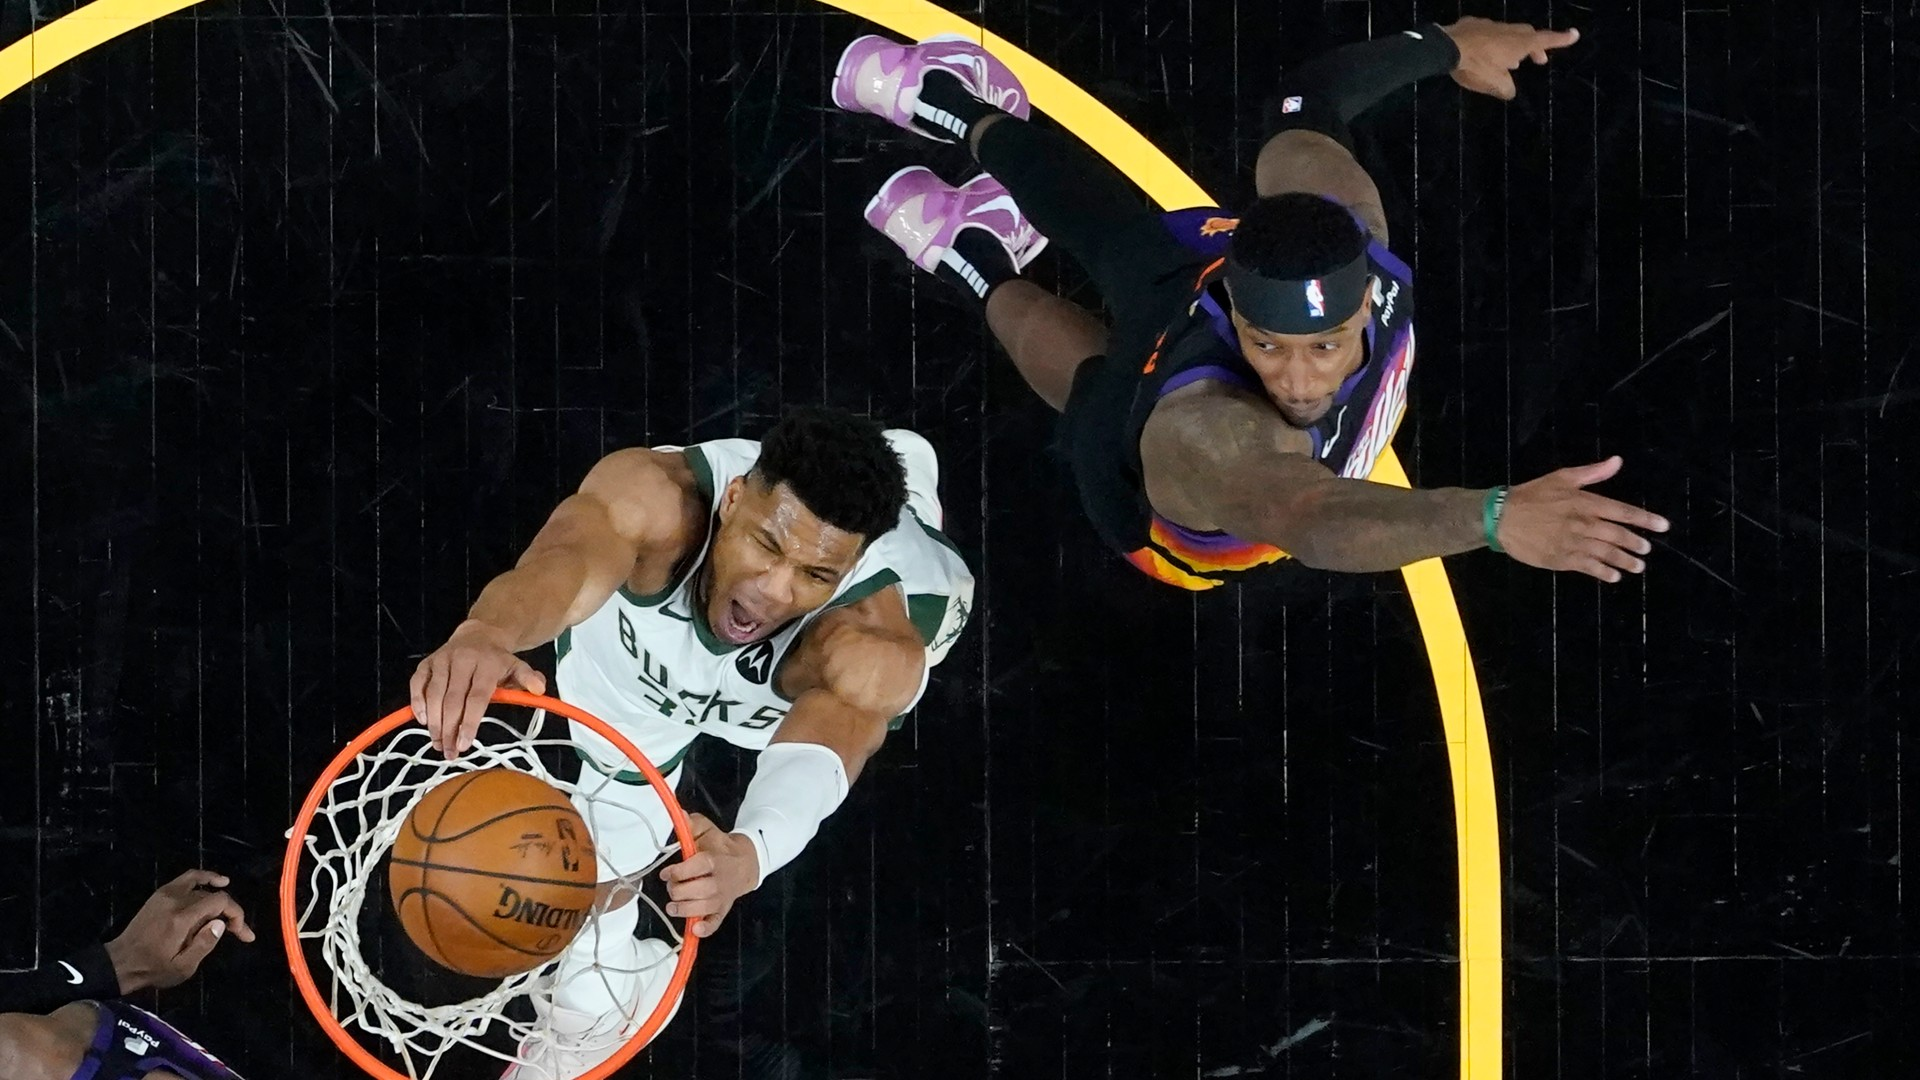 Bucks' Giannis Antetokounmpo on playing in NBA Finals after knee injury: 'I thought I'd be out this year'